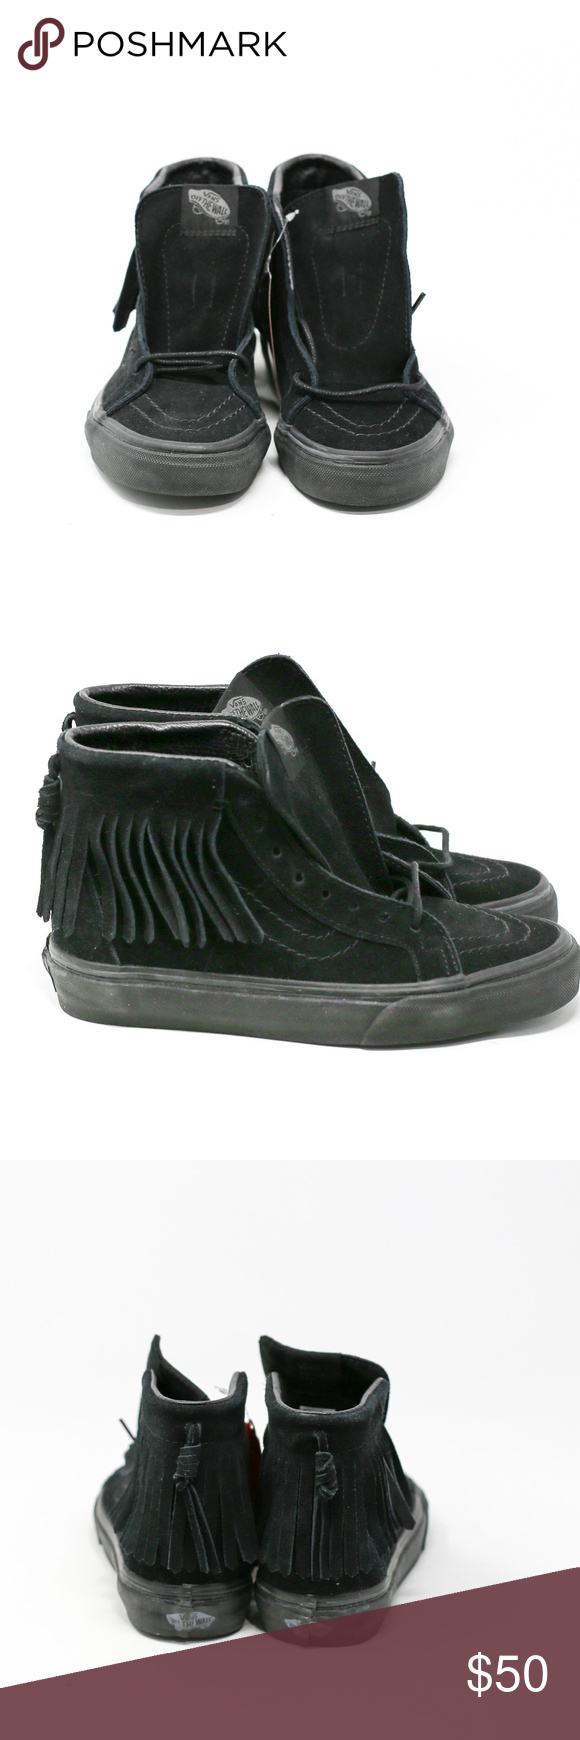 2e2613f2b3 Vans Sk8-Hi Moc Suede High-Top Shoes Vans - Sk8-Hi Moc Suede - Black Black  - Men U.S. Size 3.5 Women U.S. Size 5.0 (WITH BOX) Suede Rubber sole Shaft  ...